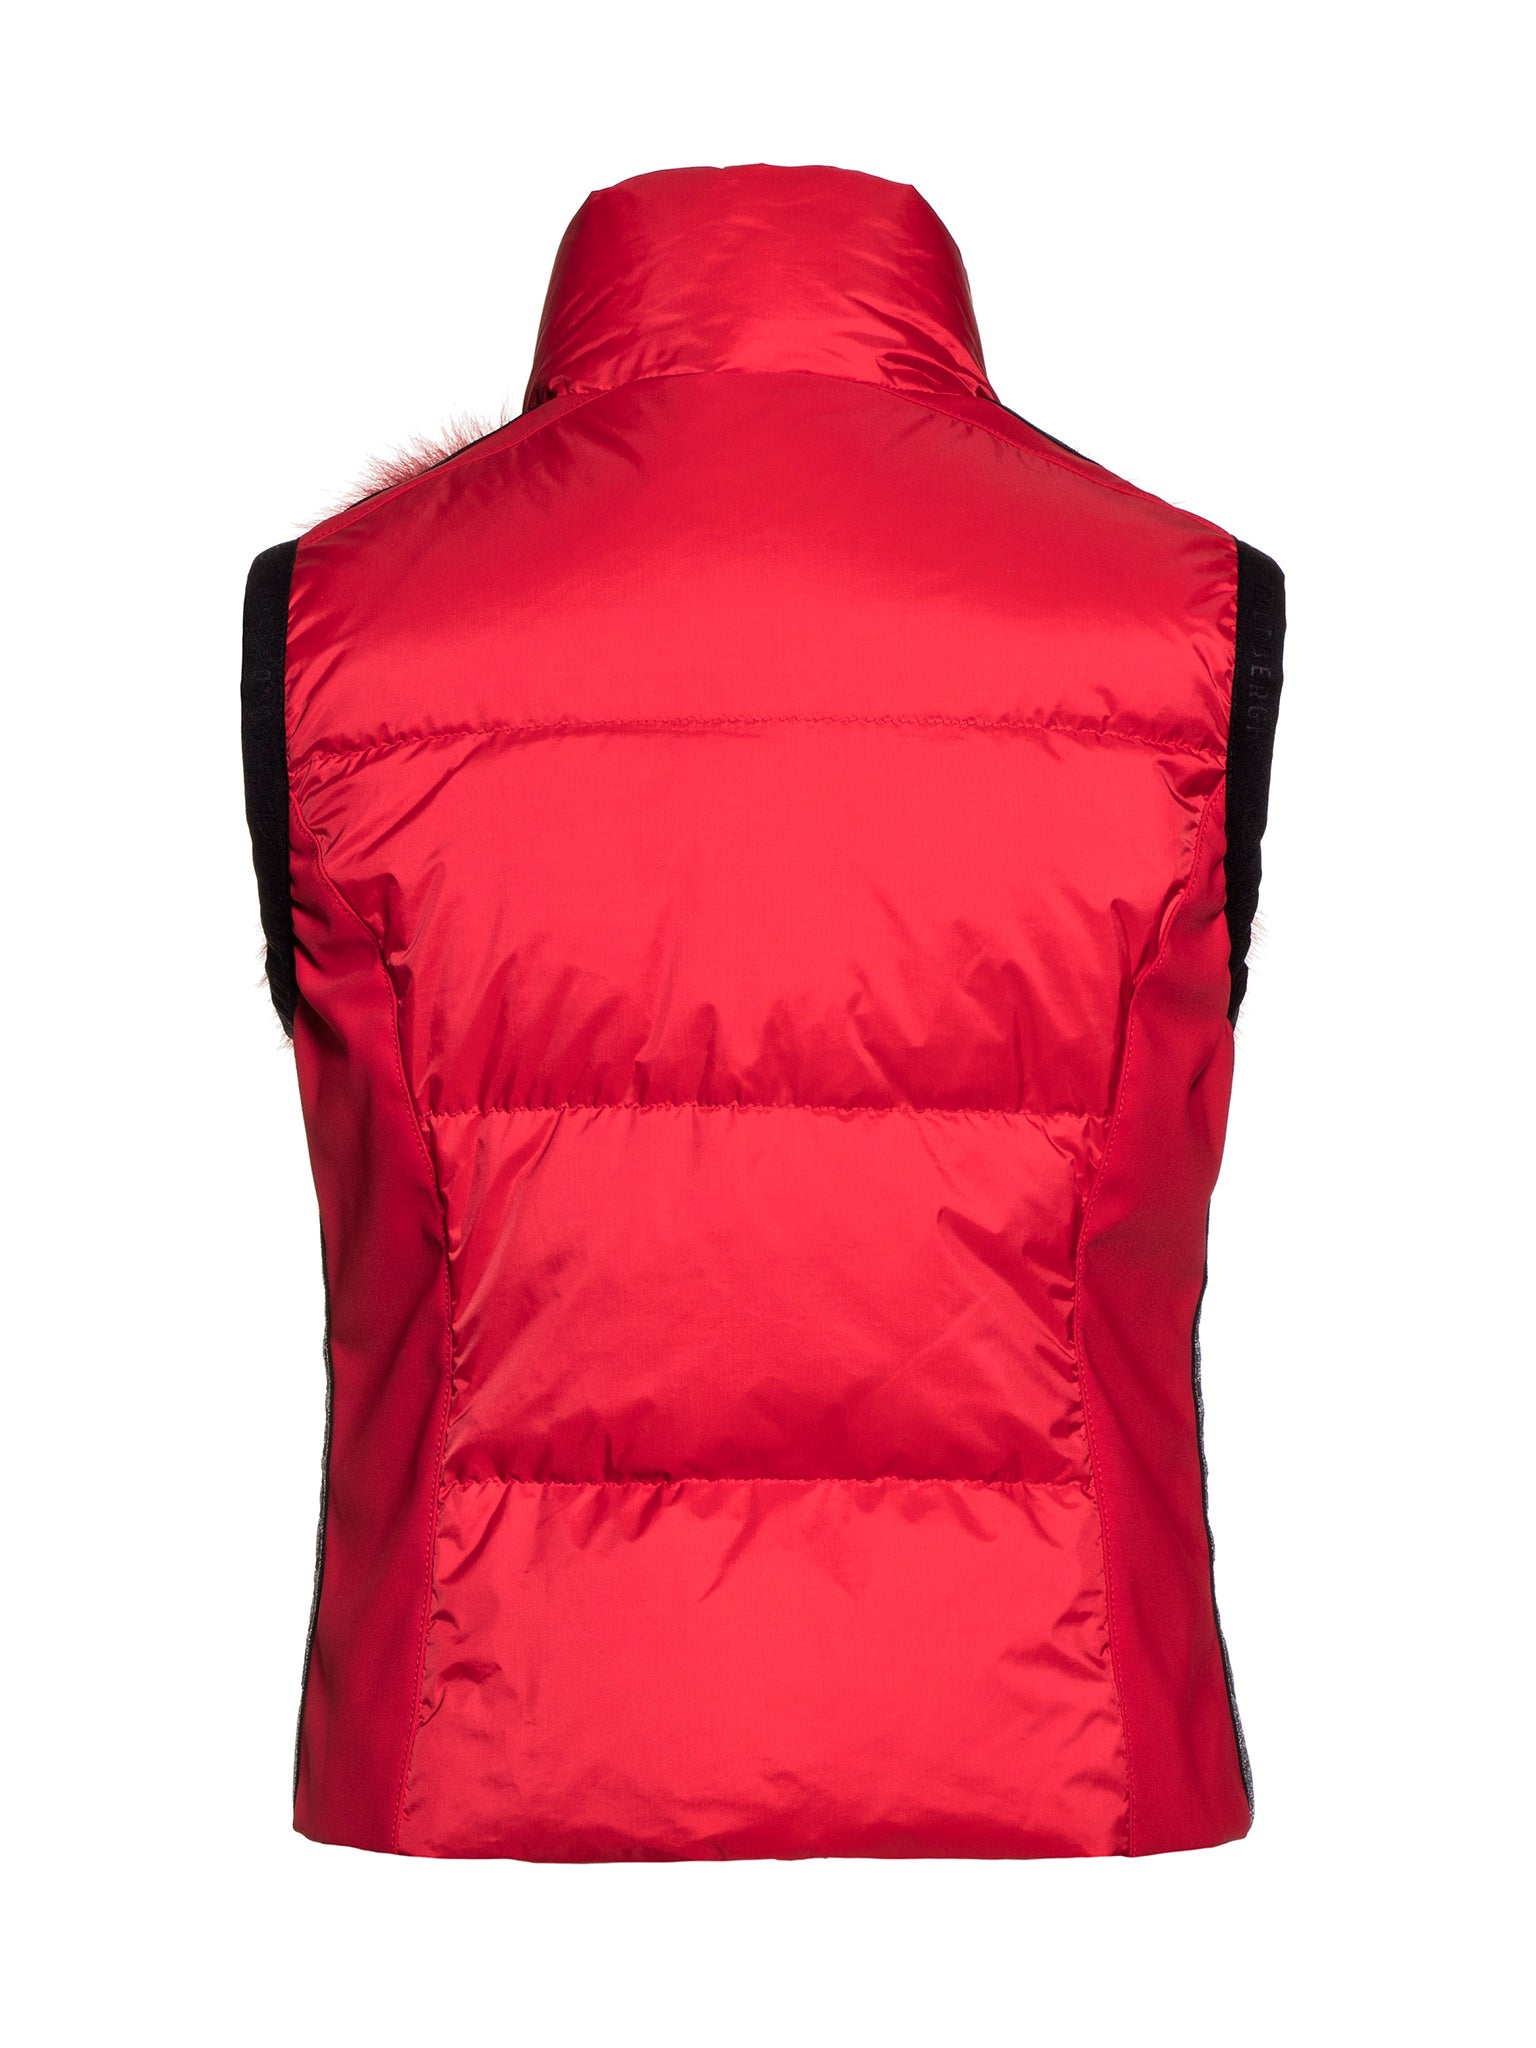 Rikur 2 in 1 Fur Gilet Ski Jacket - Lava